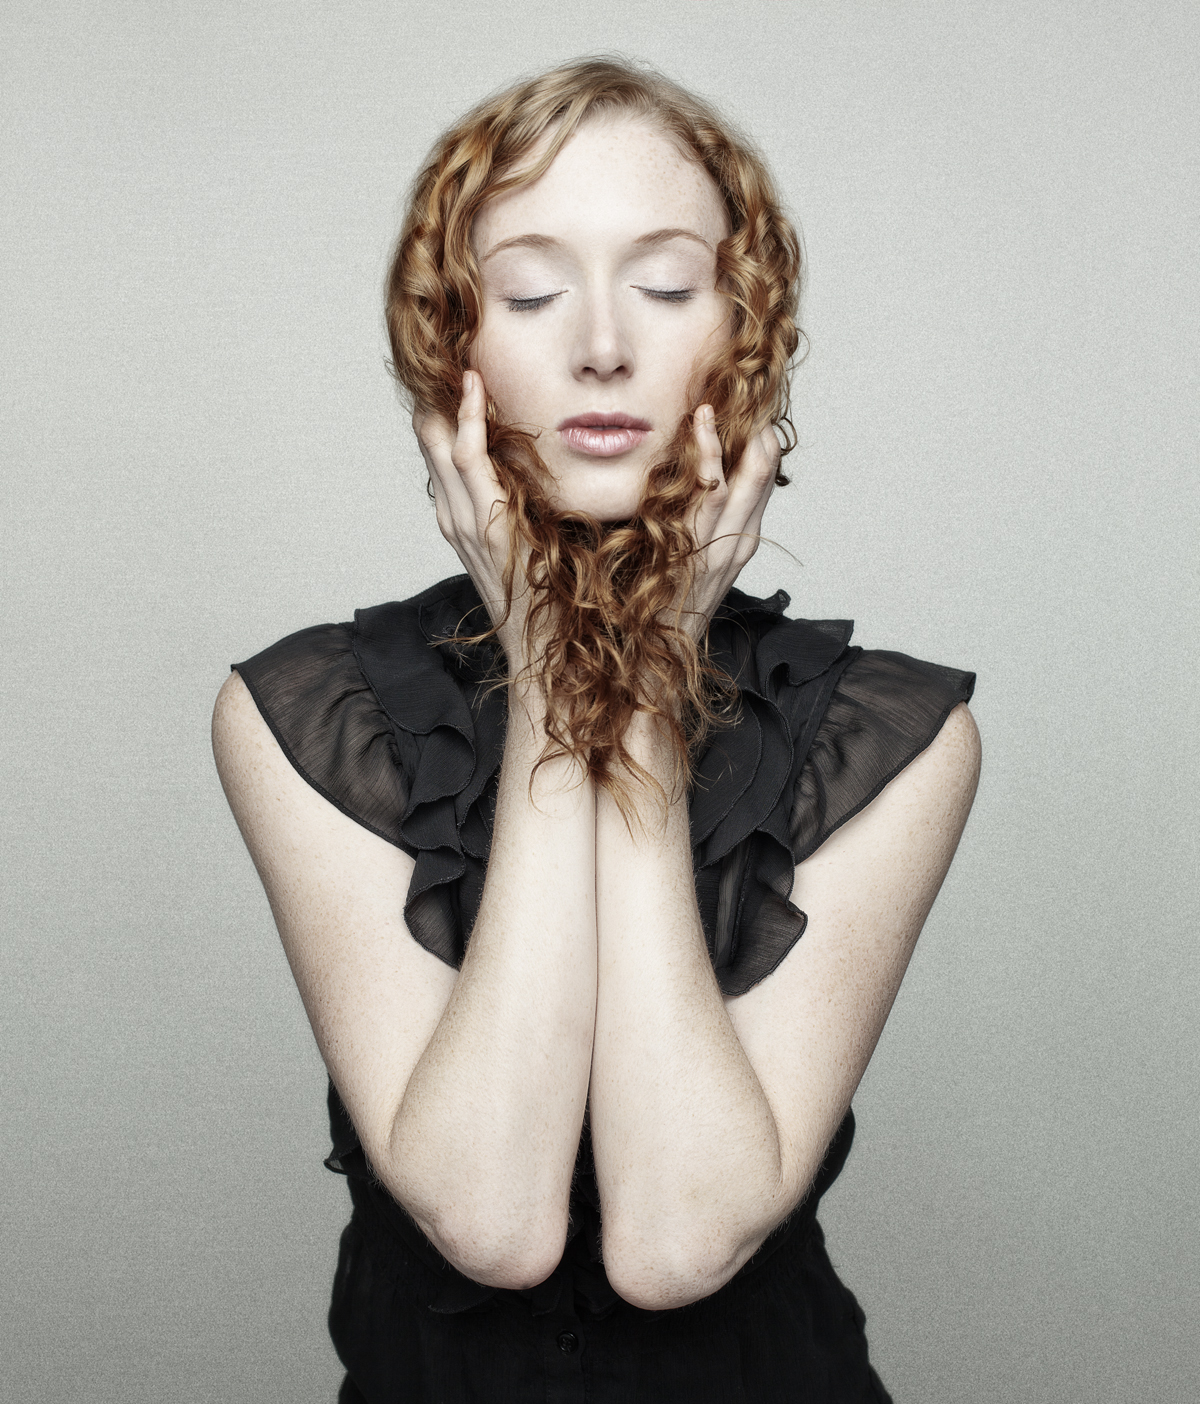 grimes-j-toppro-gallery-2012-10